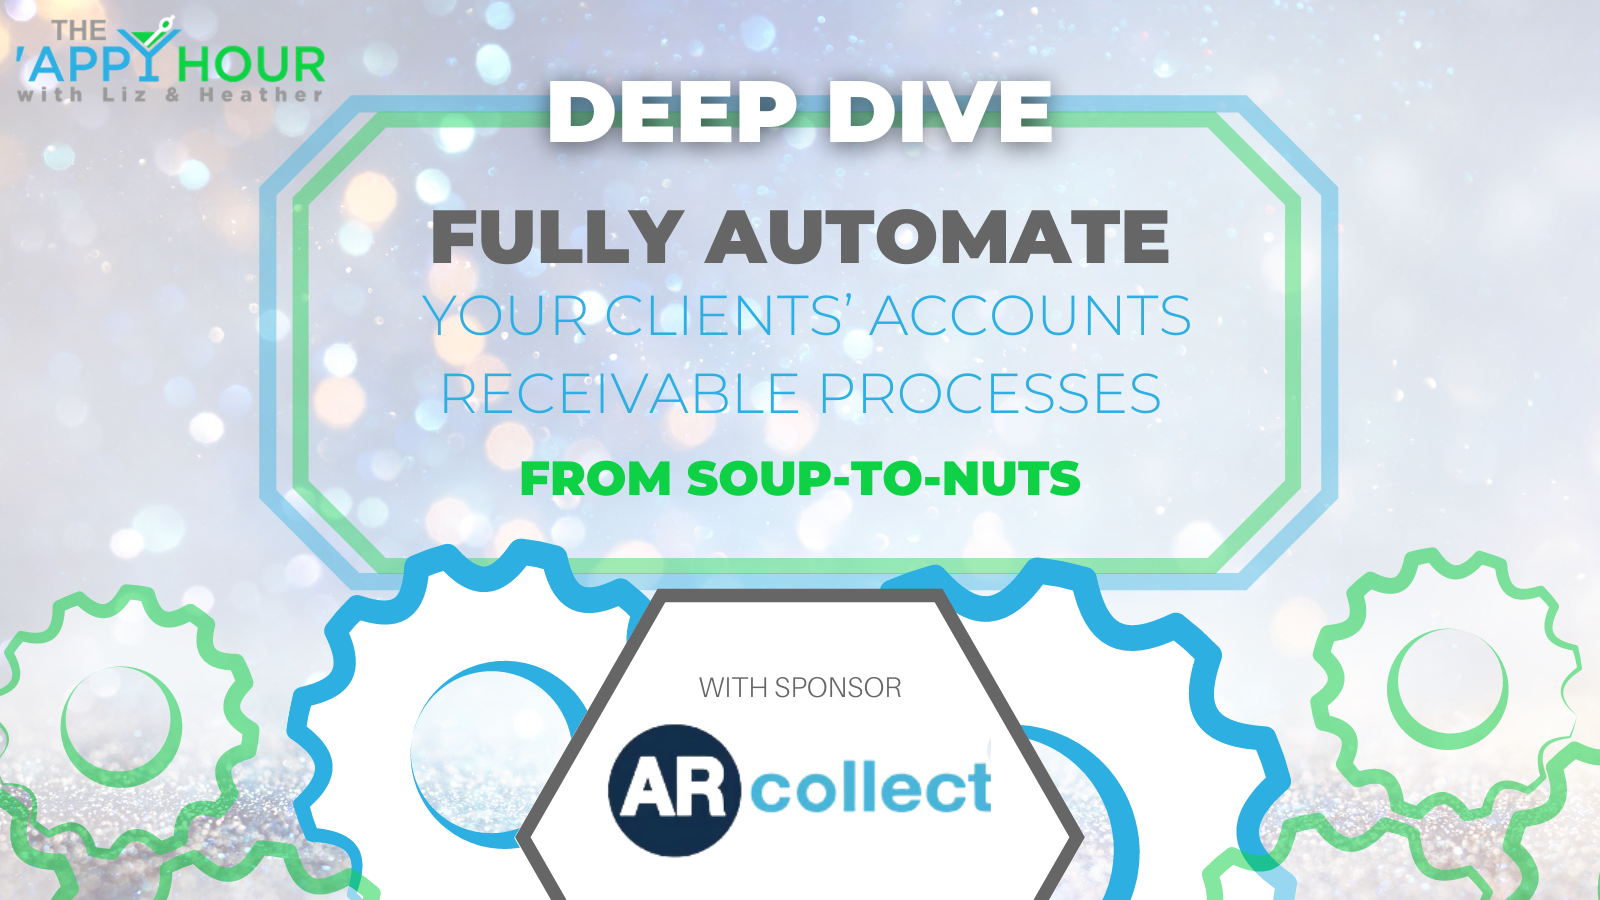 Fully Automate Your Clients' Accounts Receivables Processes